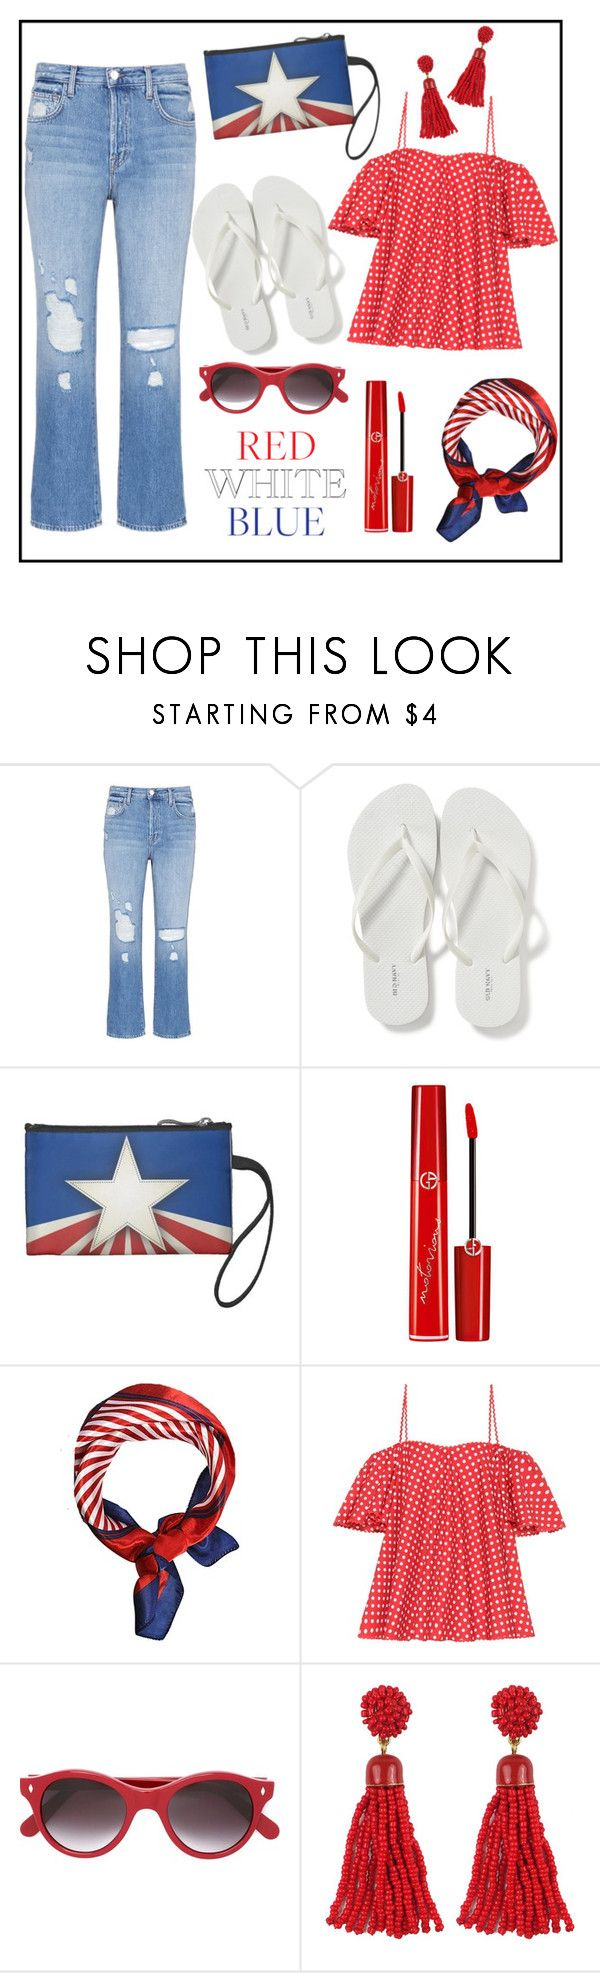 """""""Red White Blue!"""" by diane1234 ❤ liked on Polyvore featuring J Brand, Old Navy, Giorgio Armani, Anna October and Cutler and Gross"""